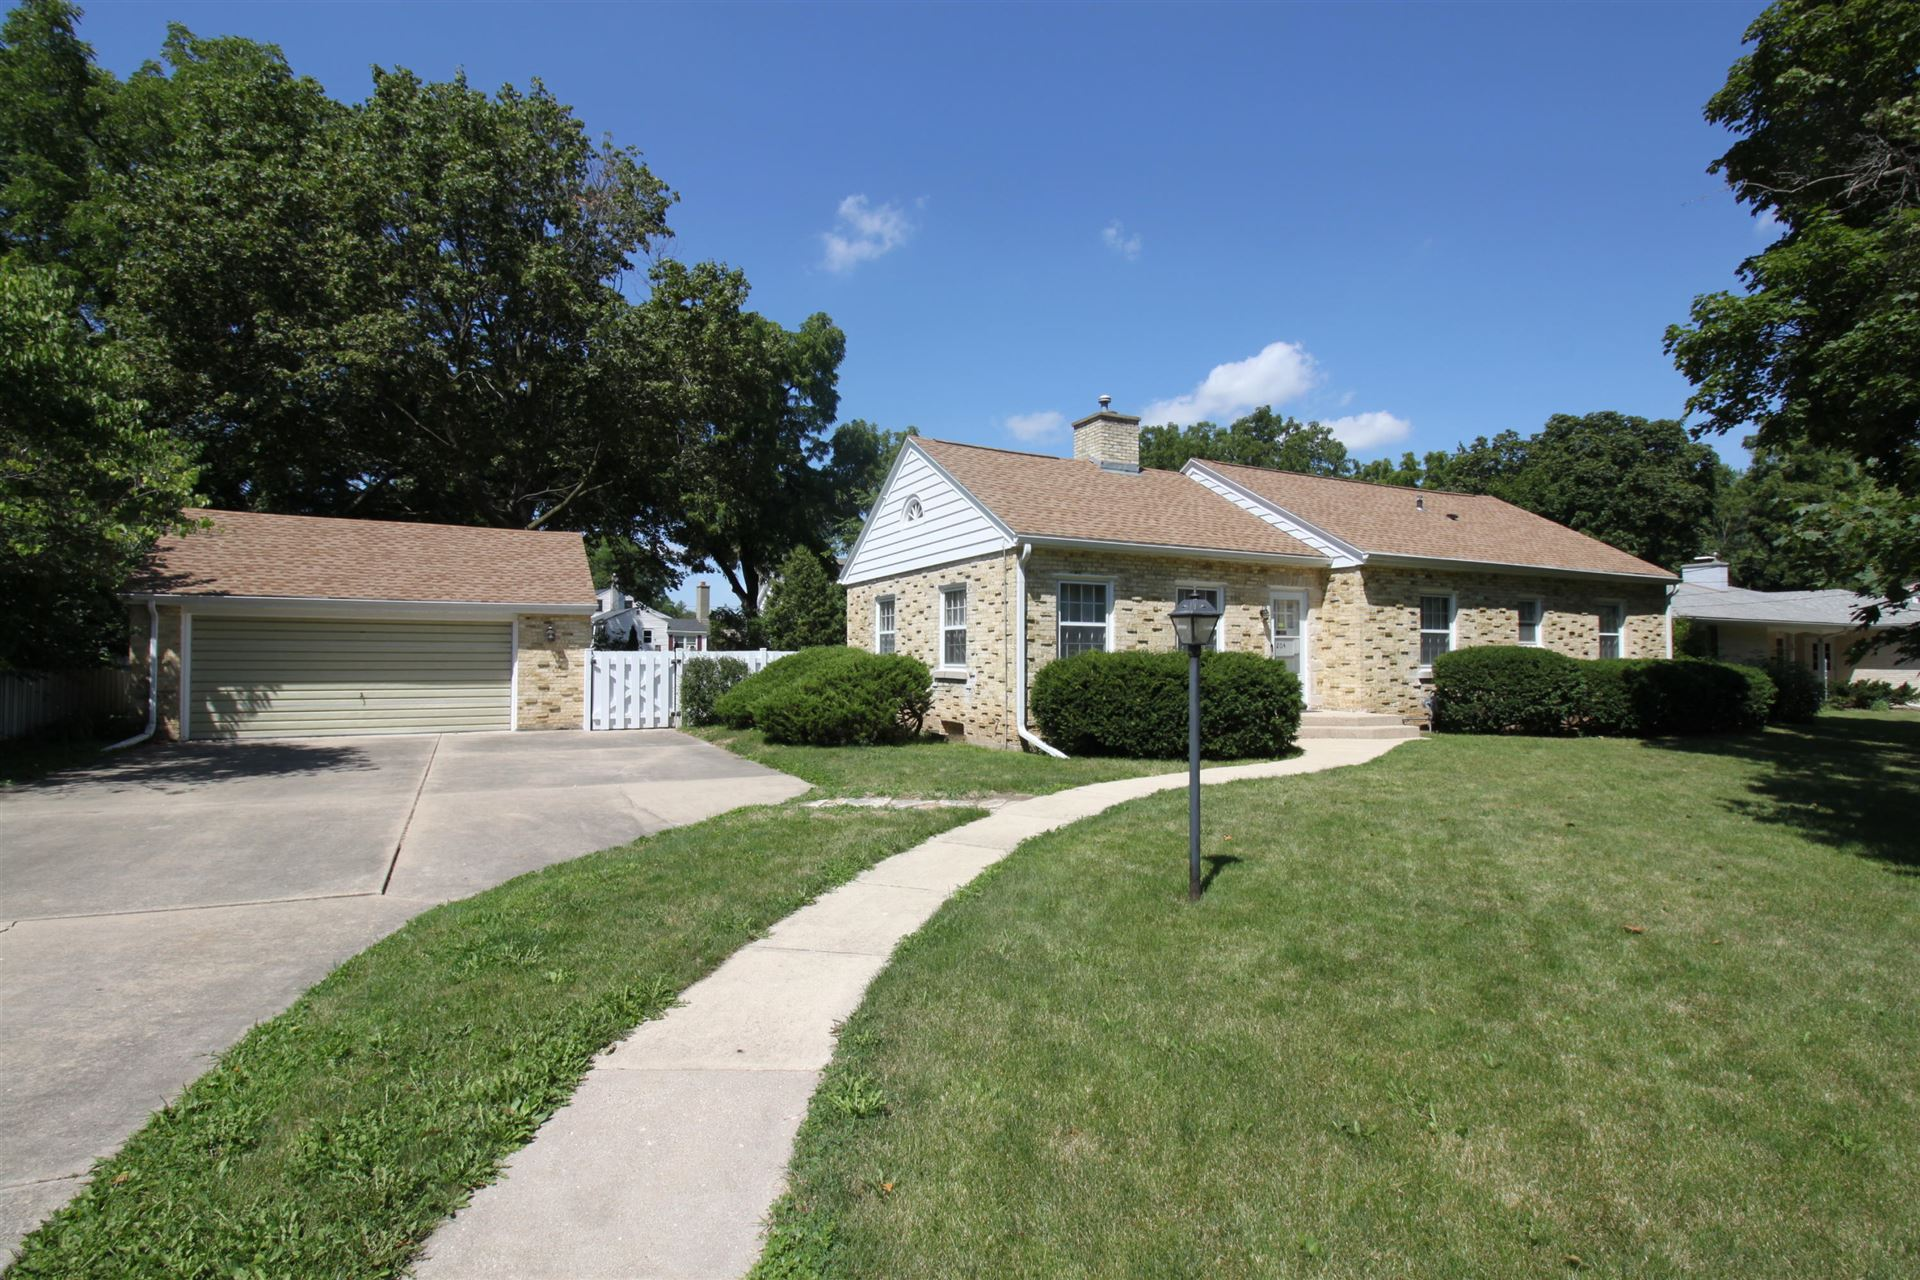 204 N Esterly, Whitewater, WI 53190 - #: 1703242